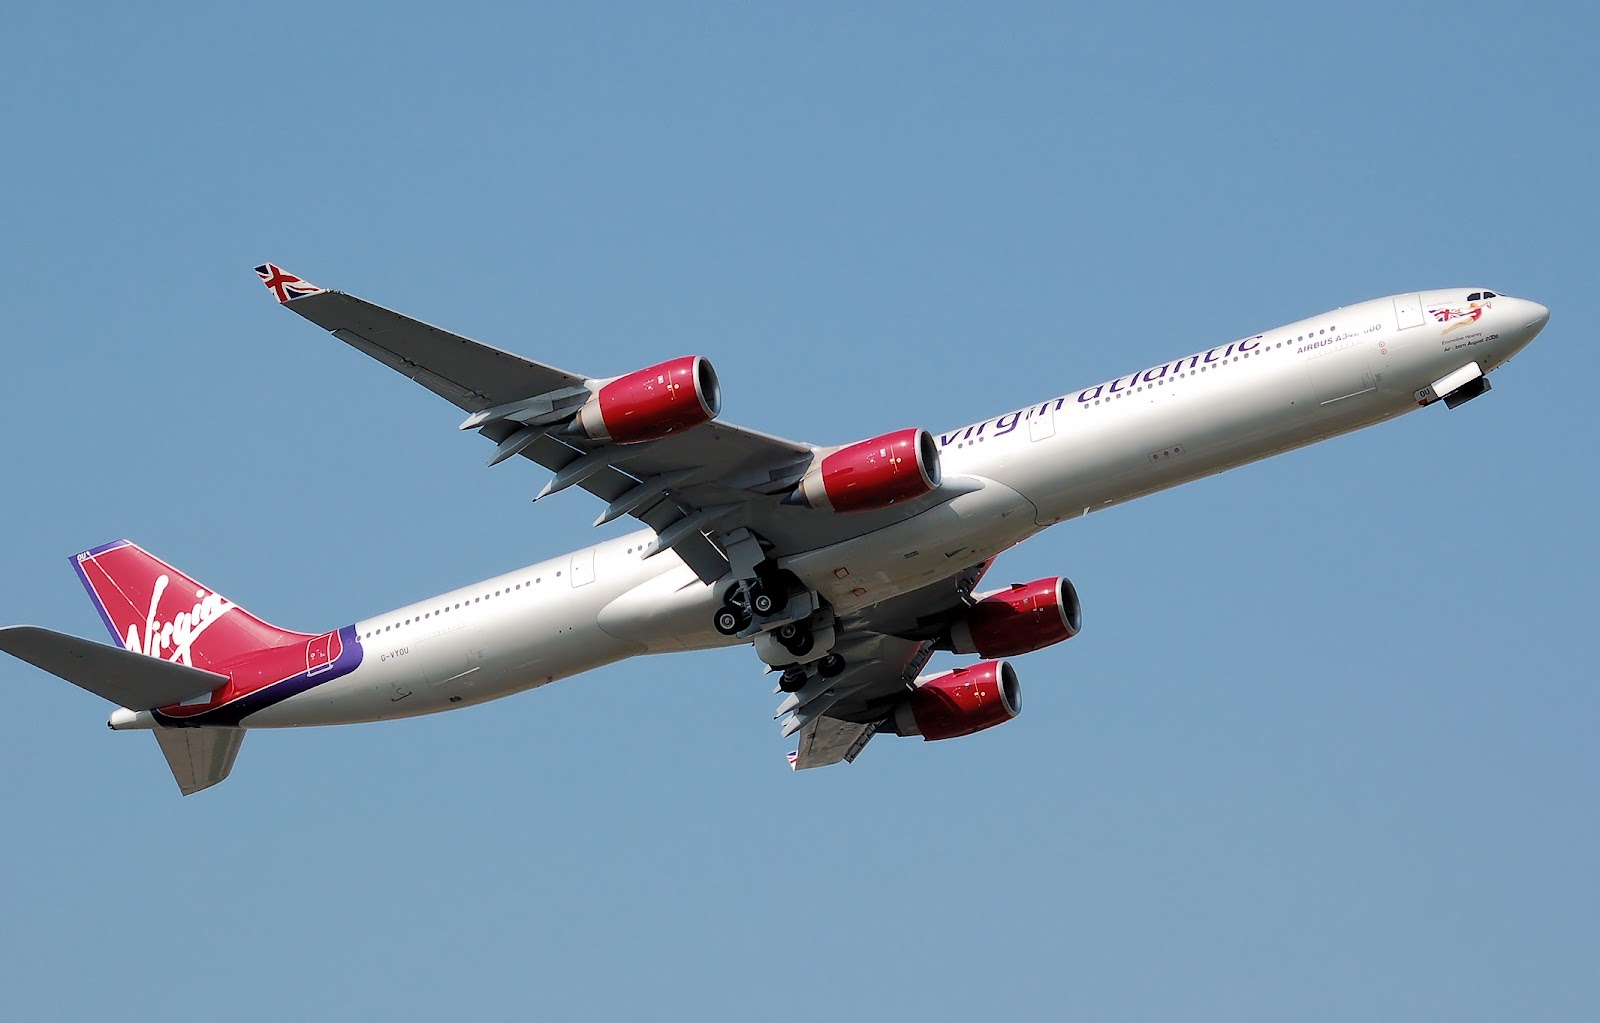 Airbus A340 600 Virgin Atlantic New Livery Aircraft Wallpaper 2624 1600x1023